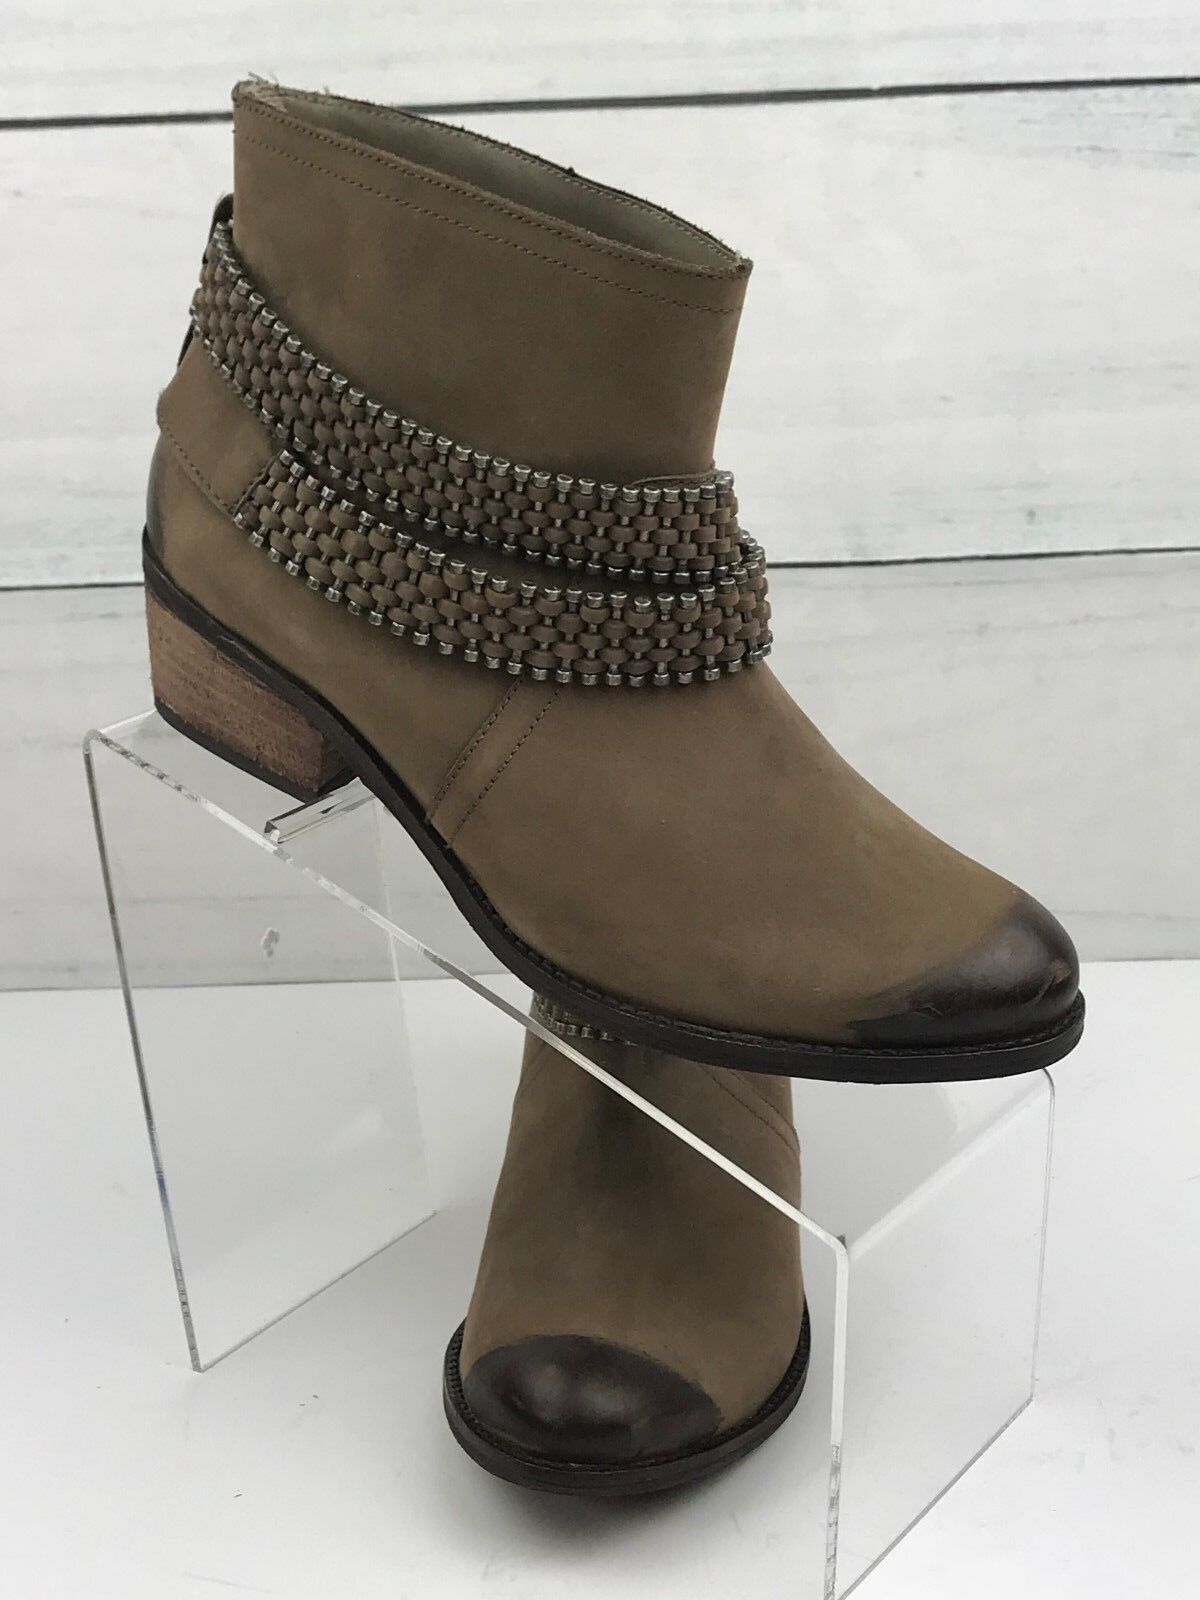 Matisse Women's brown ankle boots in Planet Size 7.5, . Retails   A2012-8